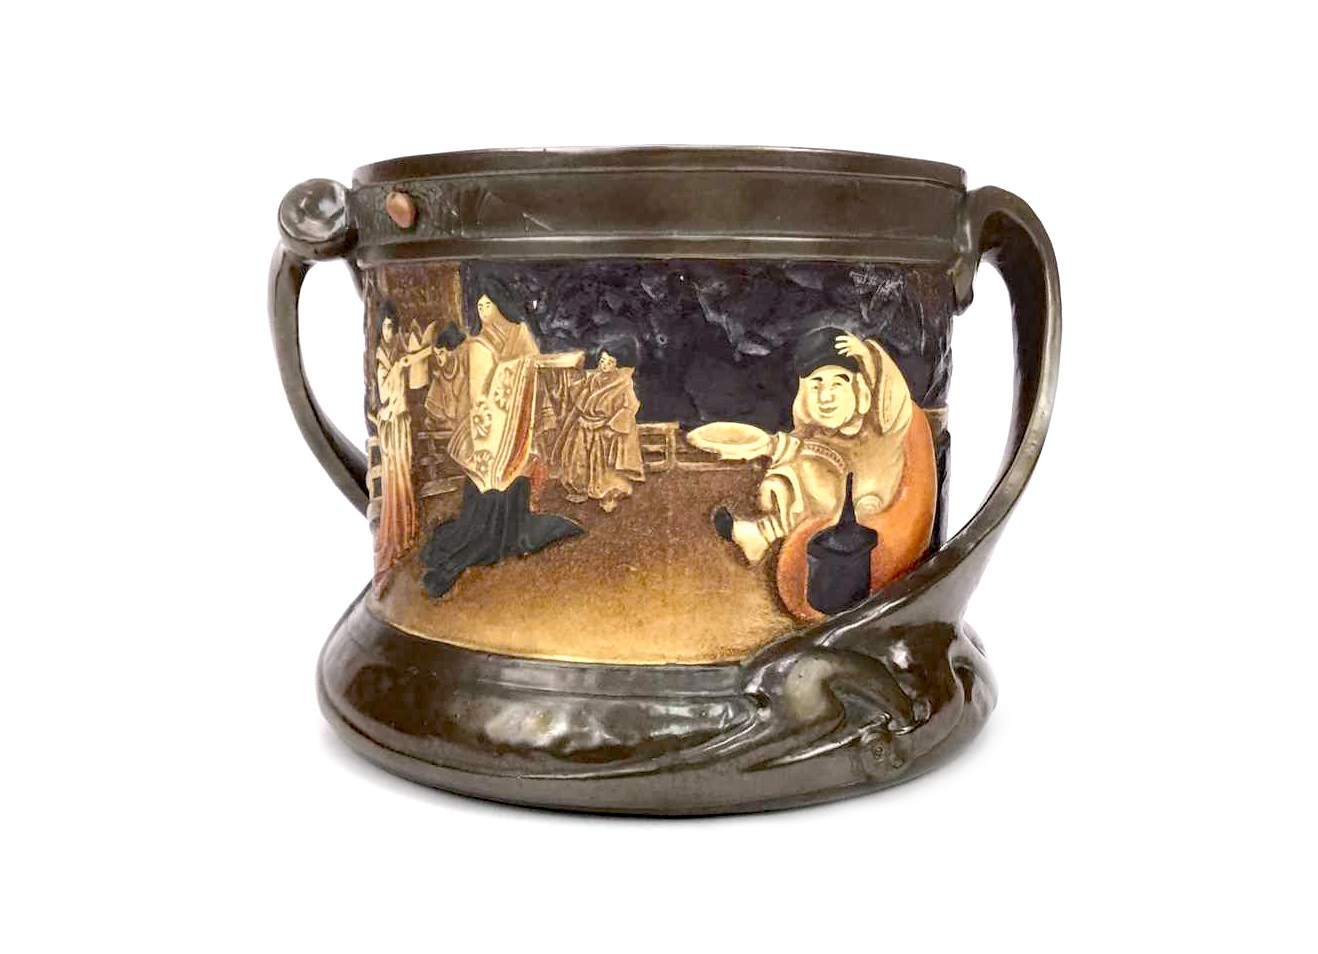 Lot 1260 - A BRETBY 'JAPONESQUE' LOVING CUP